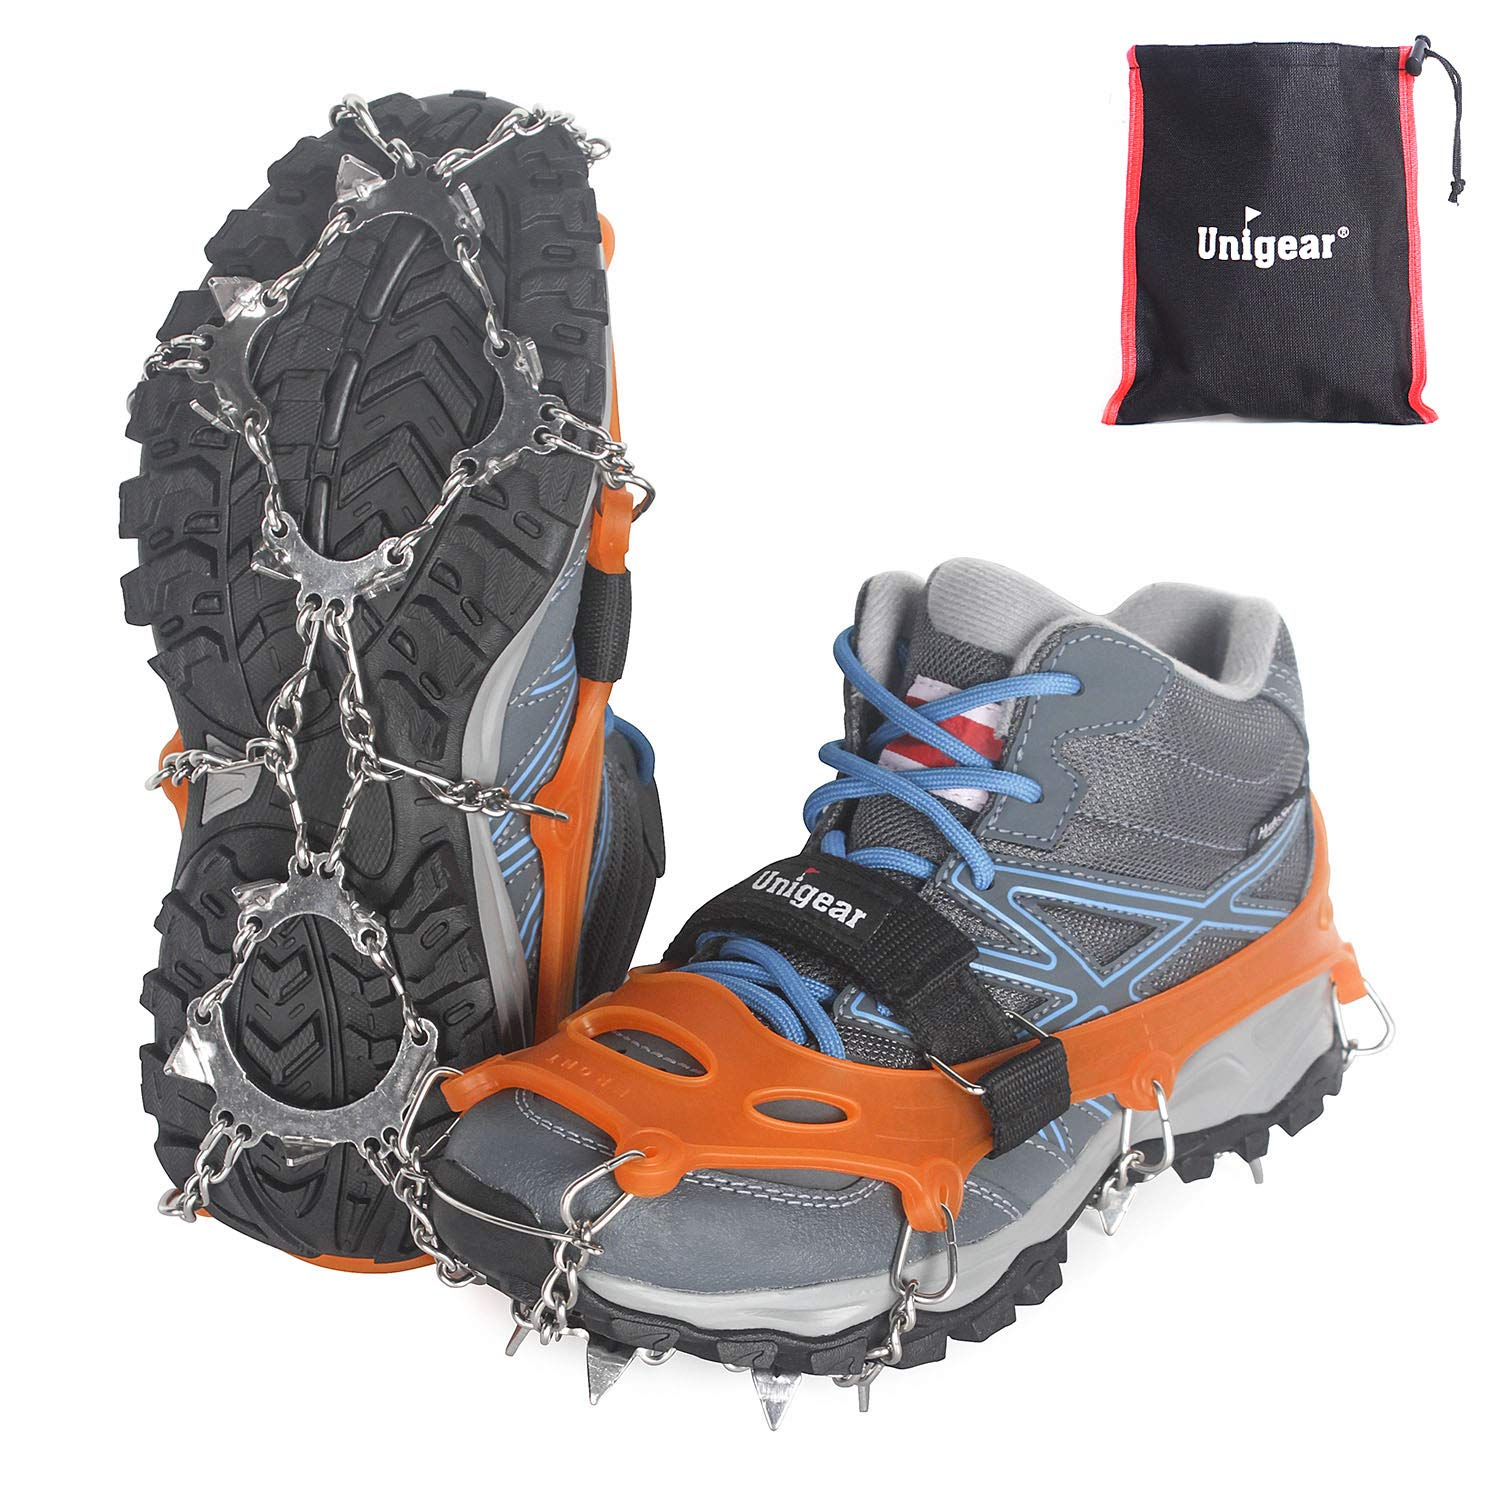 Unigear Traction Cleats Ice Snow Grips with 18 Spikes for Walking, Jogging, Climbing and Hiking (Orange (13 Spikes), Small) by Unigear